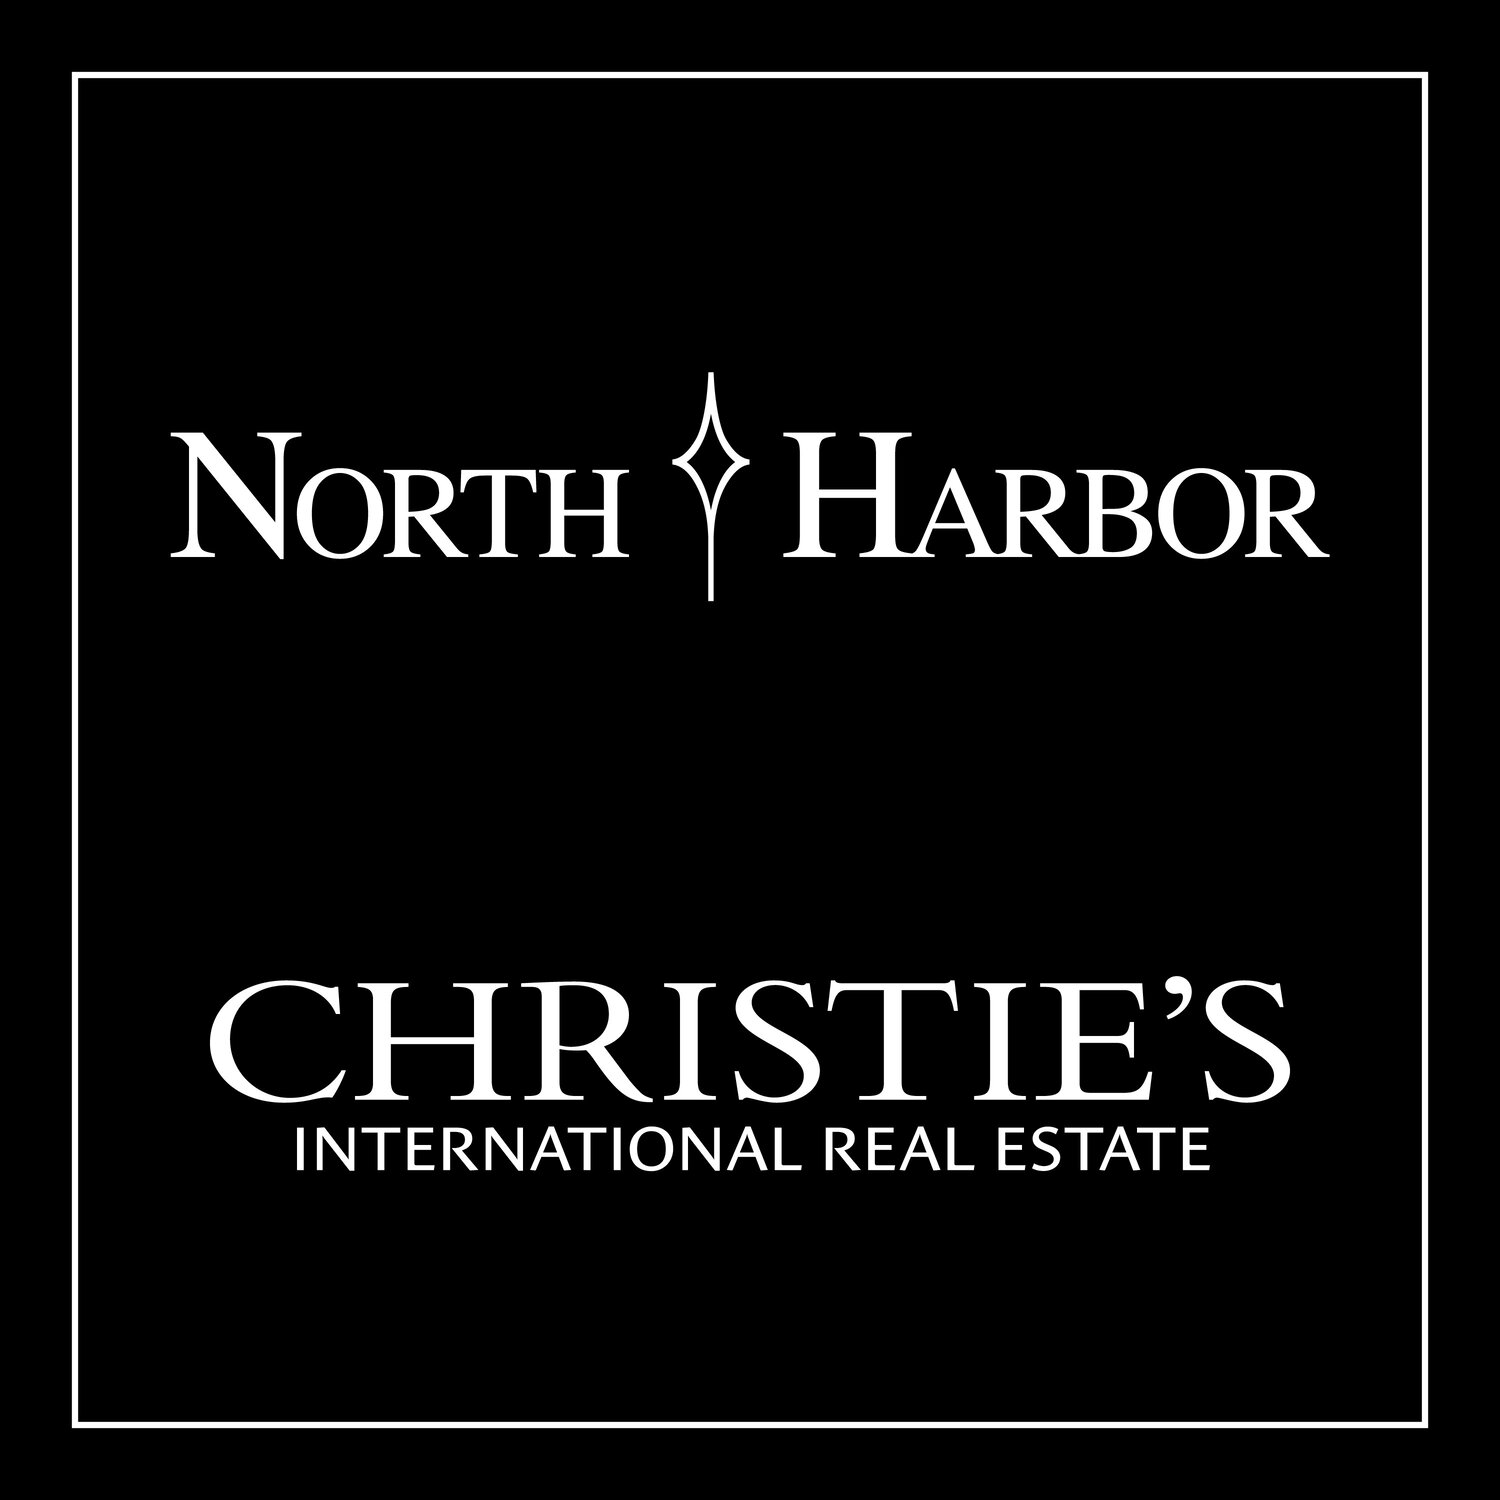 North Harbor Christie's International Real Estate